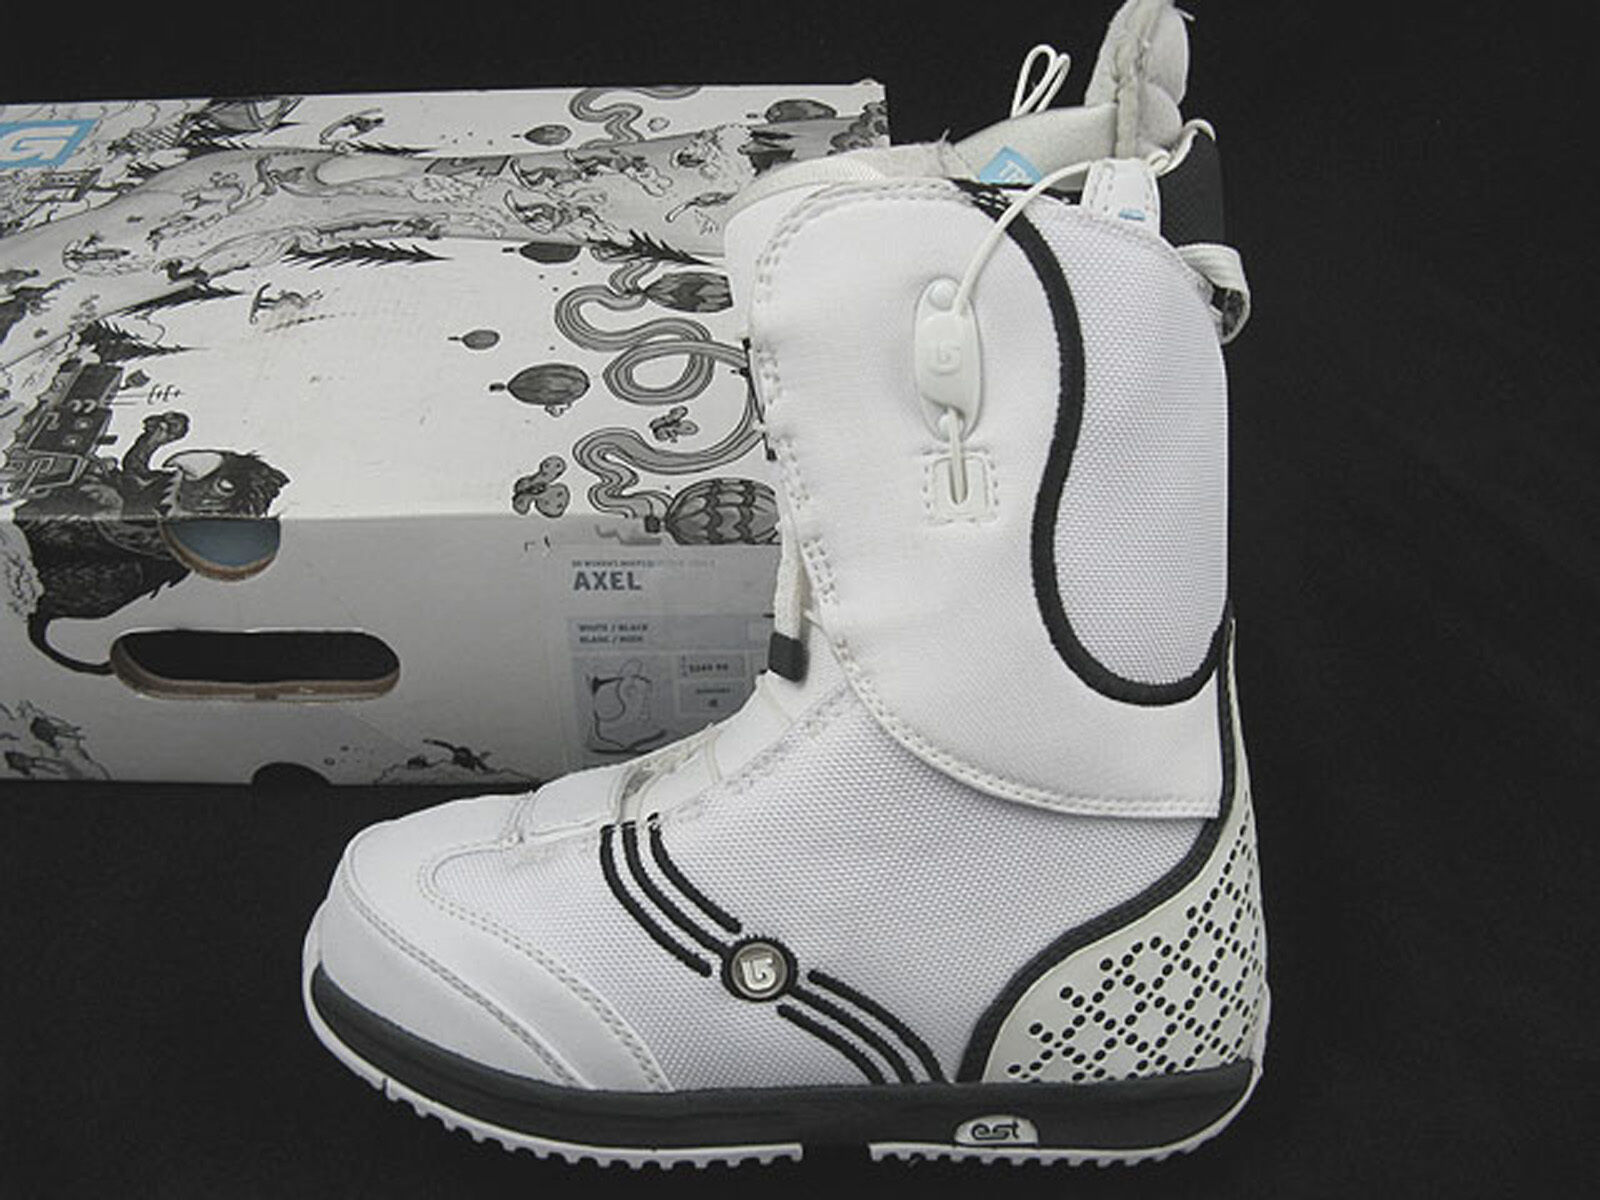 NEW  250 Burton Axel Snowboard Boots   US  5 Euro 35 Mondo 22  White  order now enjoy big discount